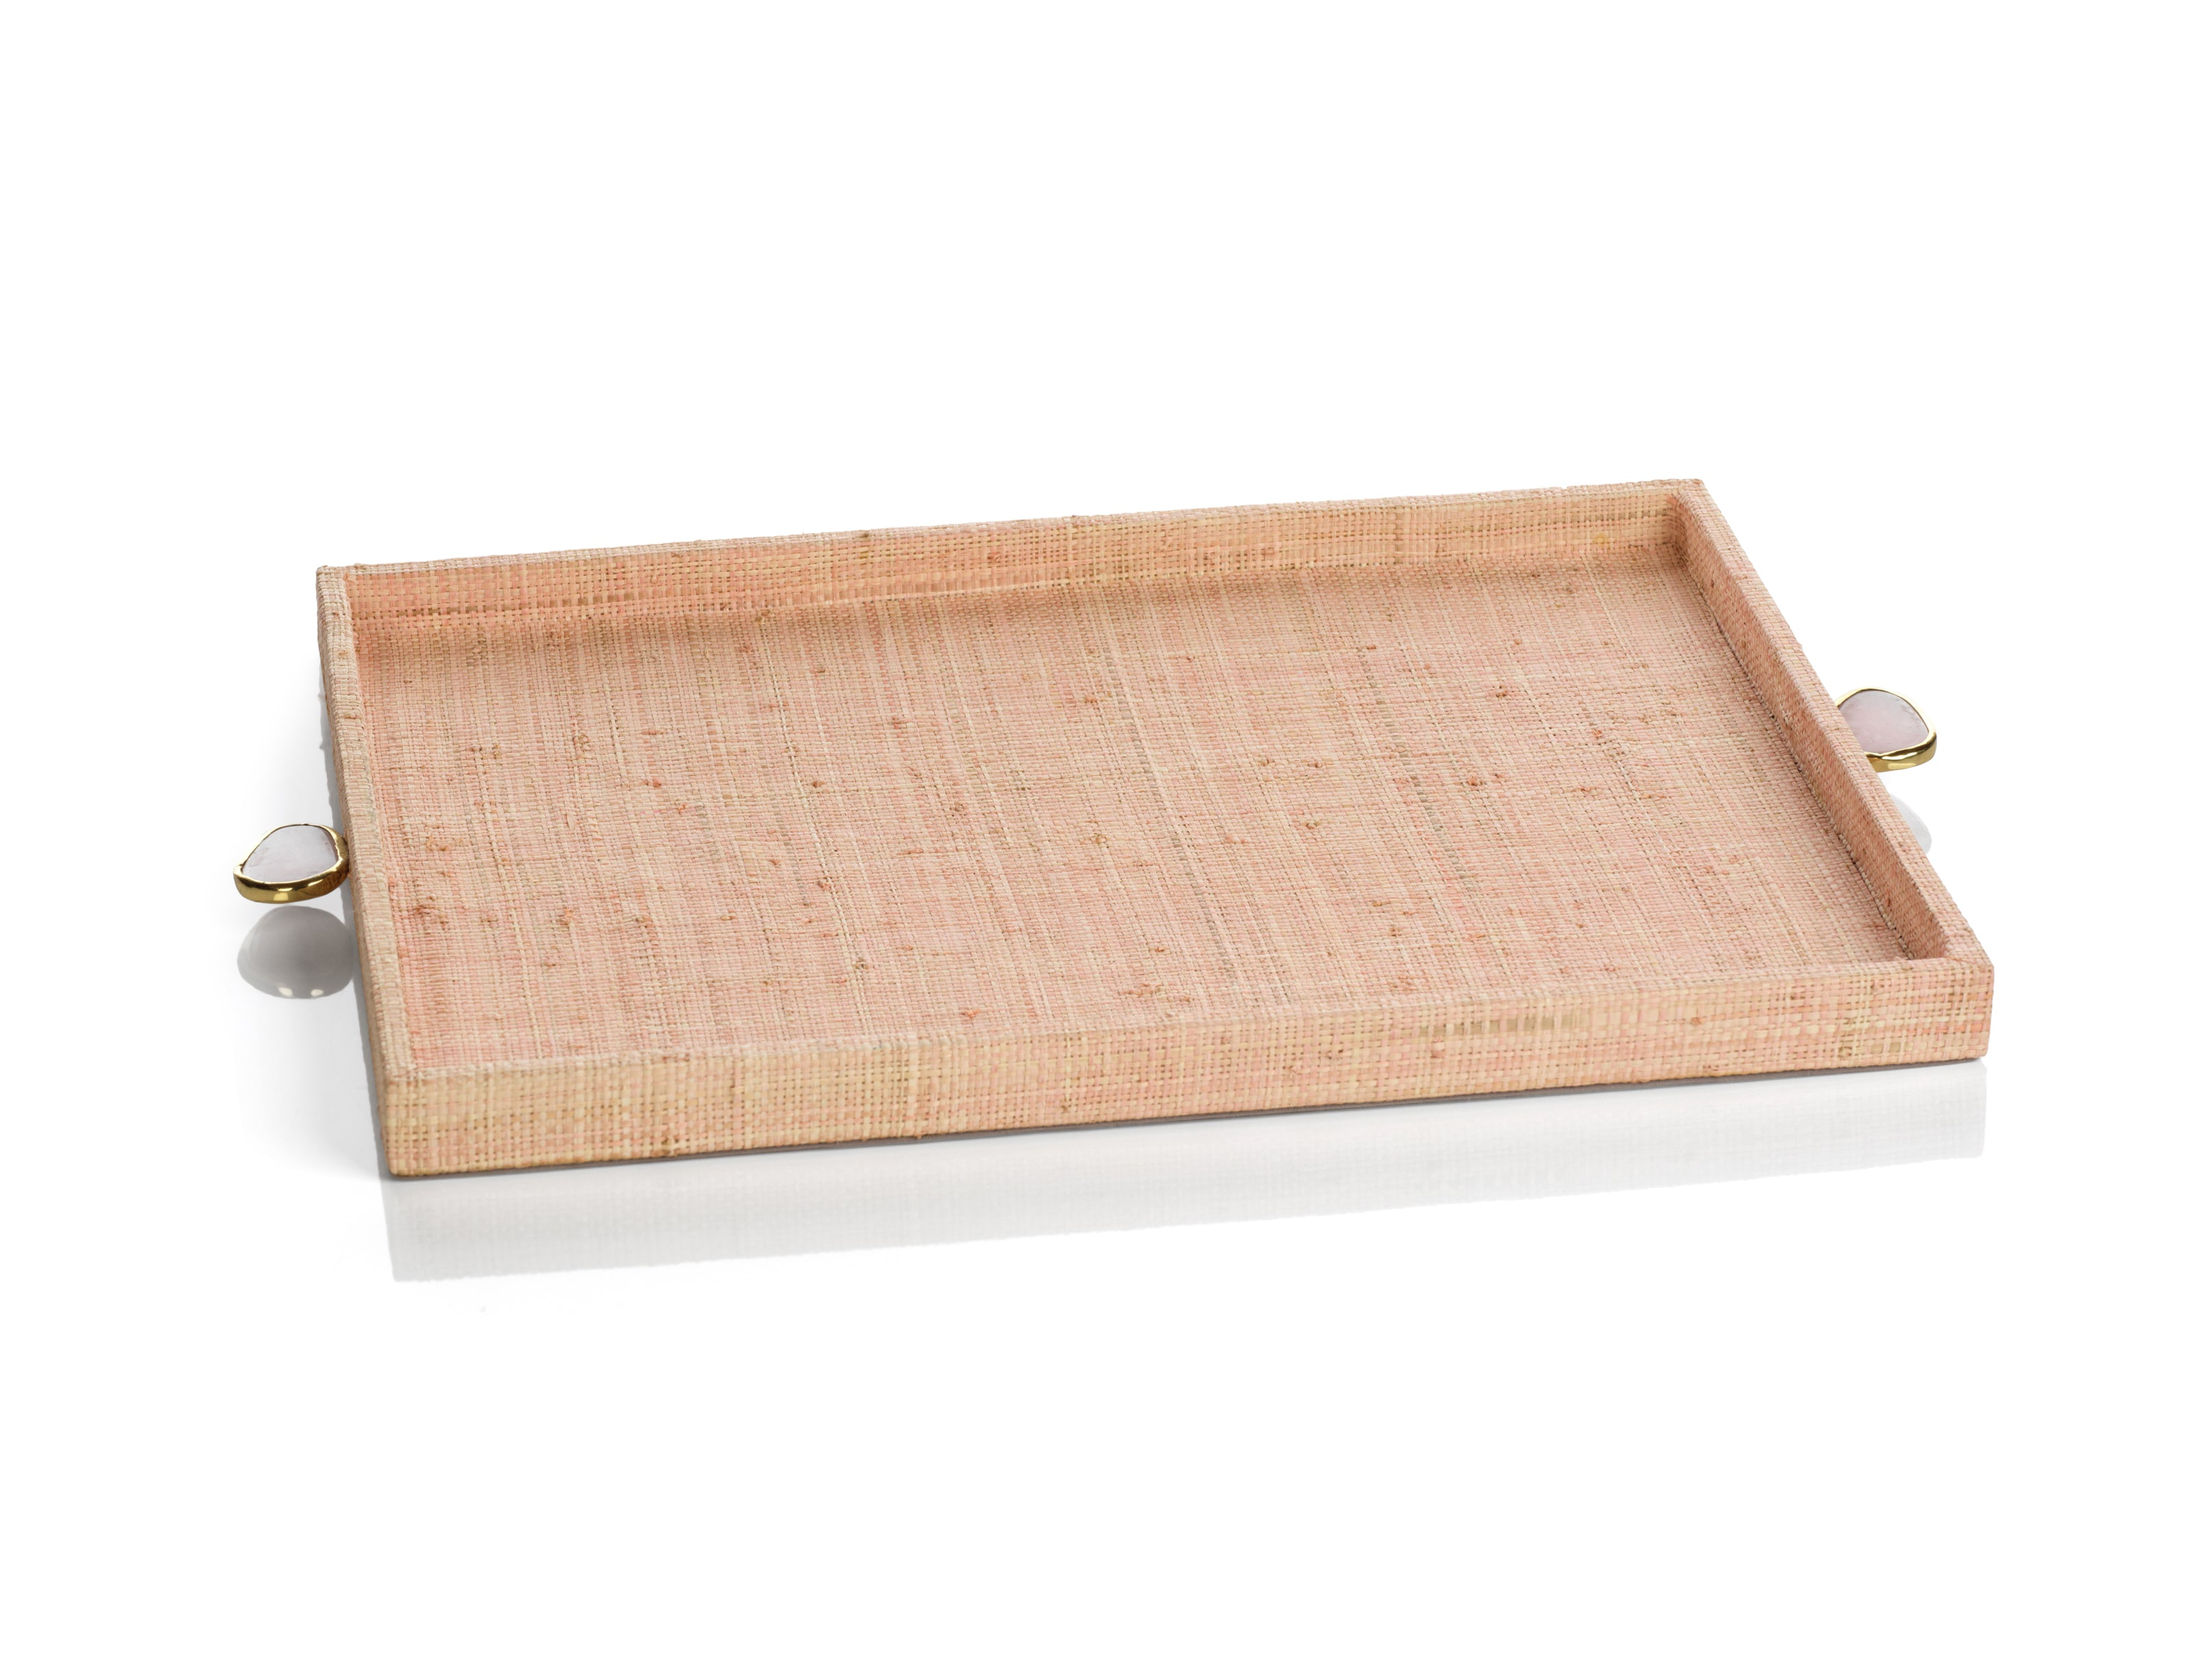 Raffia Palm Tray with Stone Accent - Blush - CARLYLE AVENUE